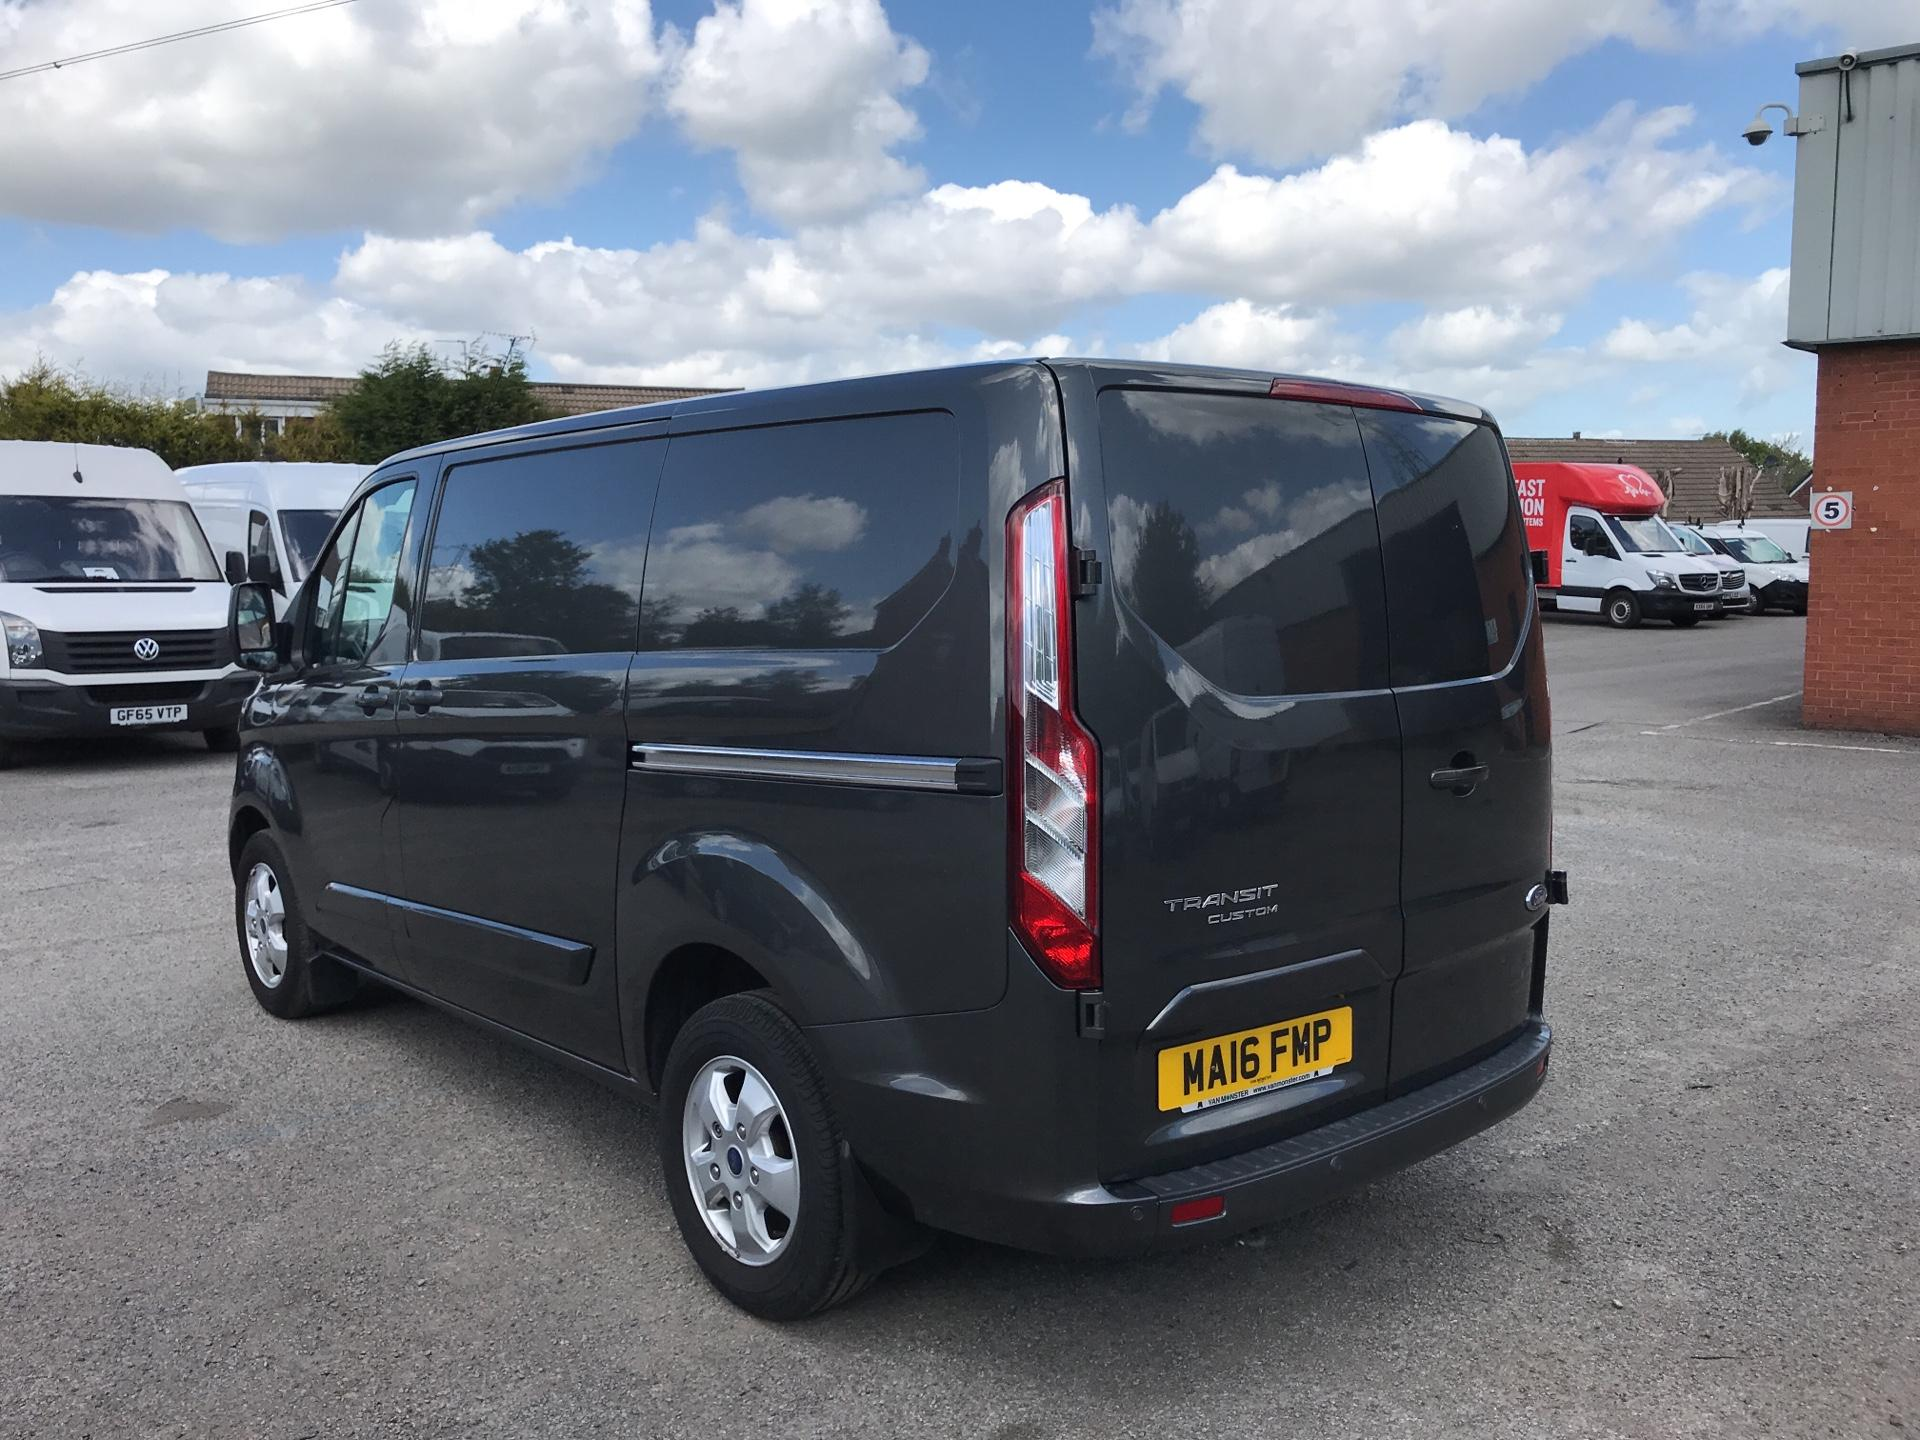 2016 Ford Transit Custom 2.2 Tdci 155Ps Low Roof Limited Van EURO 5 (MA16FMP) Image 5